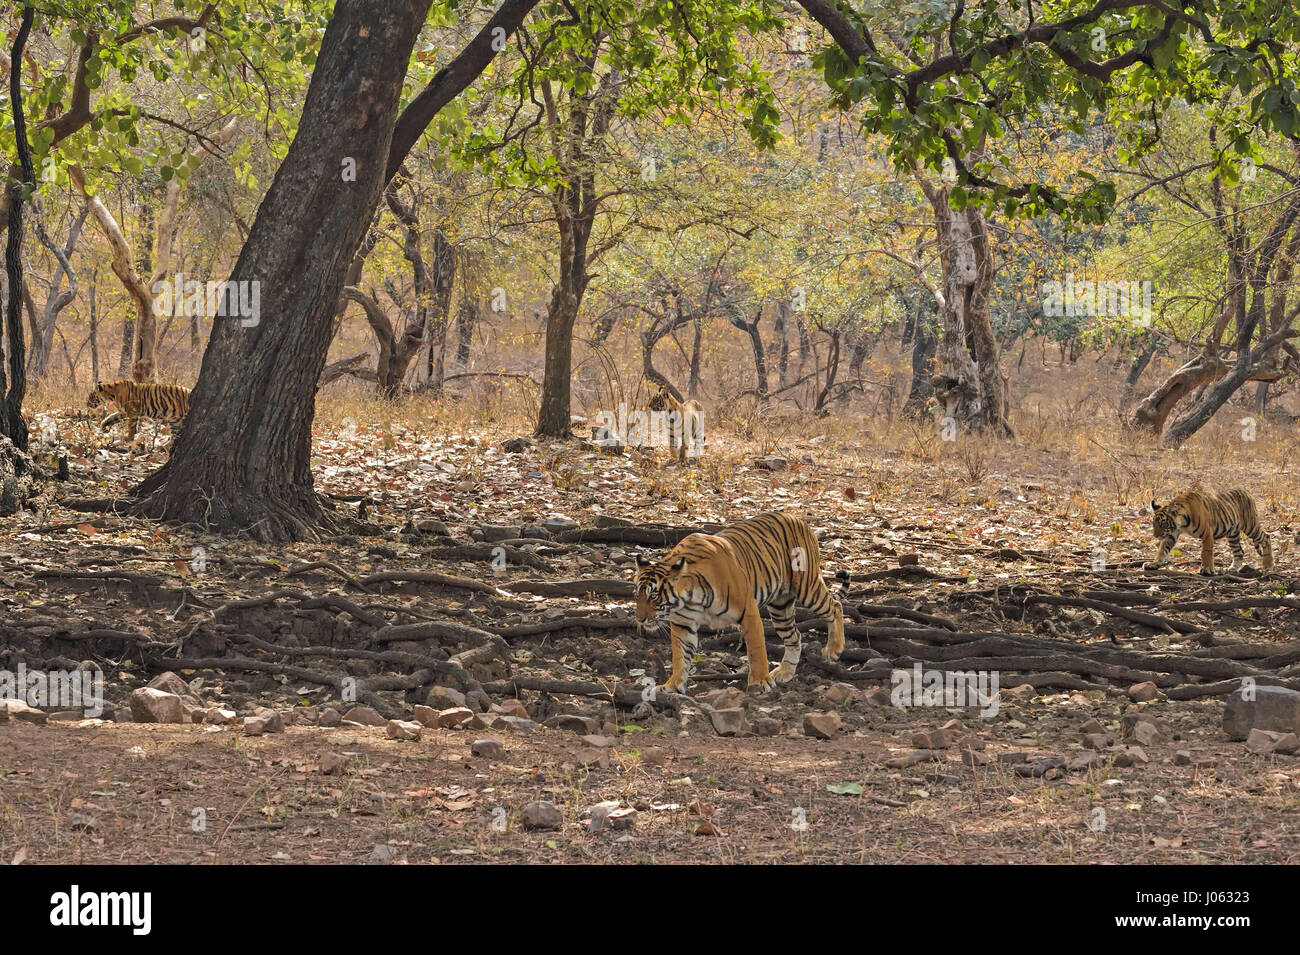 Wild Indian Tiger, mother with three young cubs, walking in the forests of Ranthambore national park, India. - Stock Image